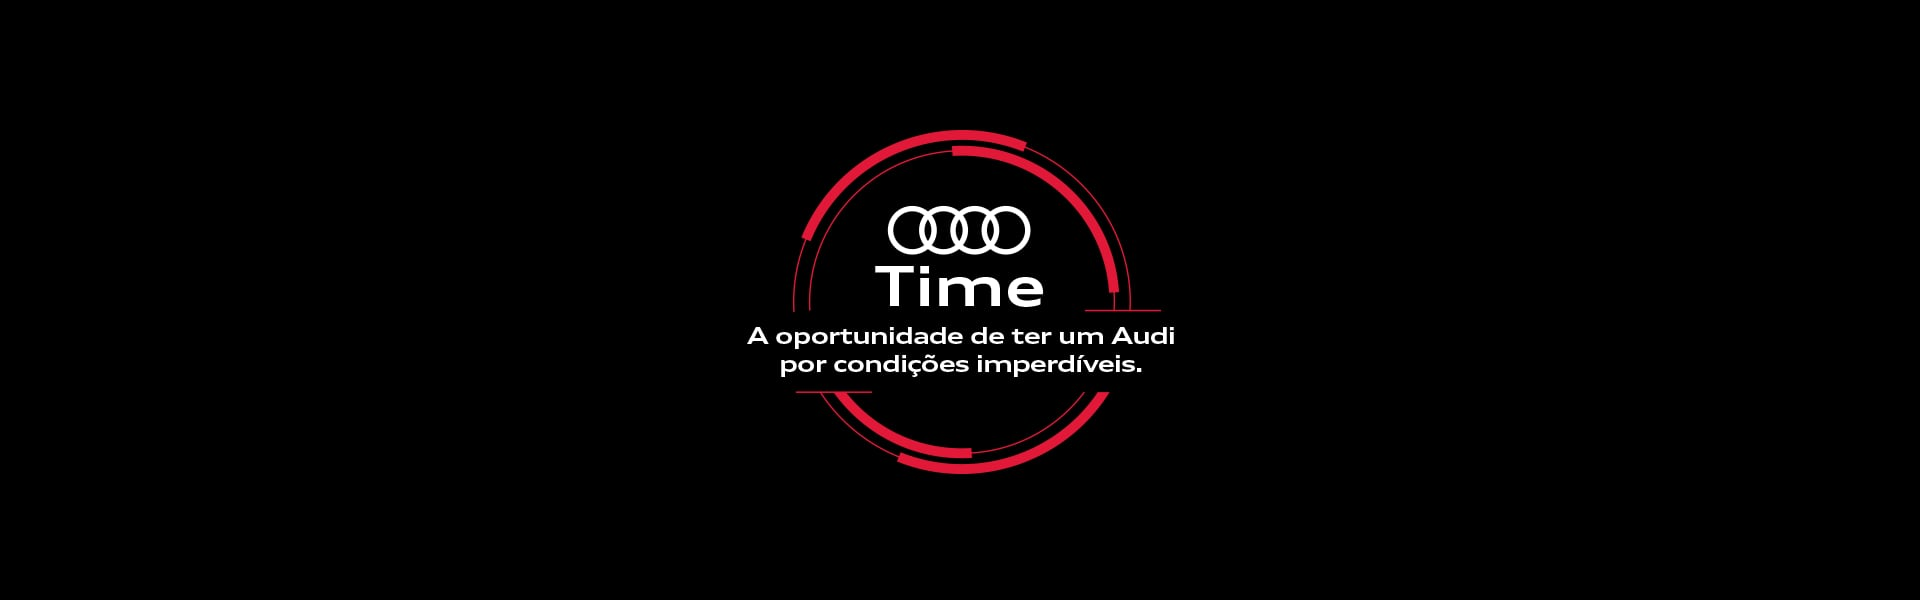 Audi_time_1920x600.png